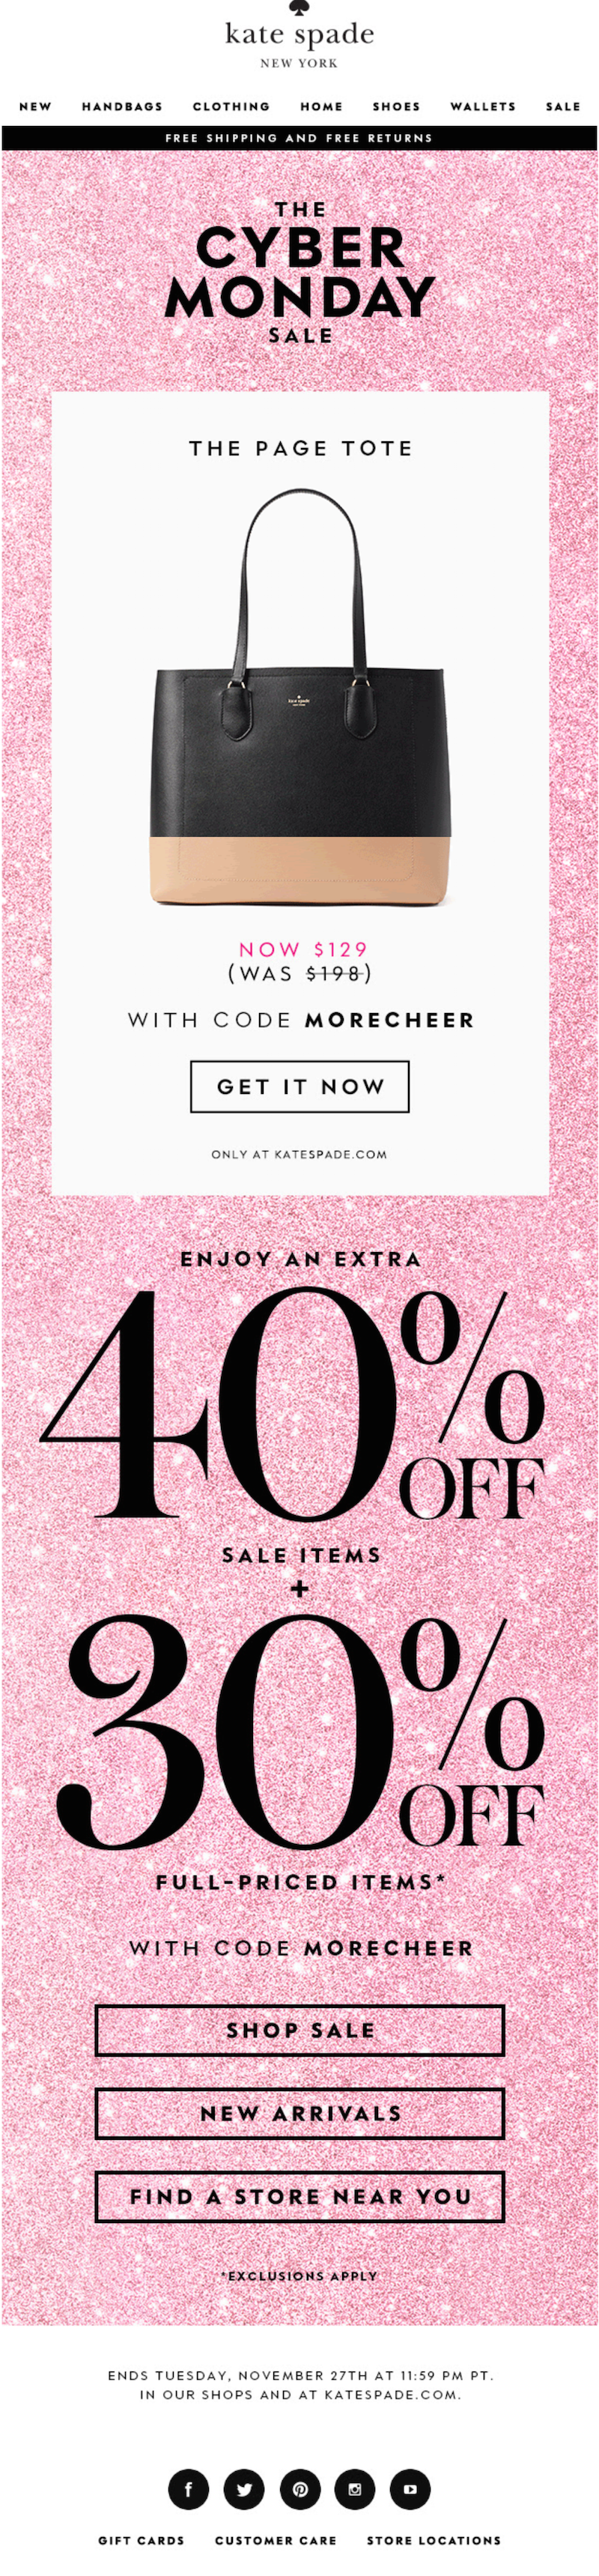 cyber monday email campaign